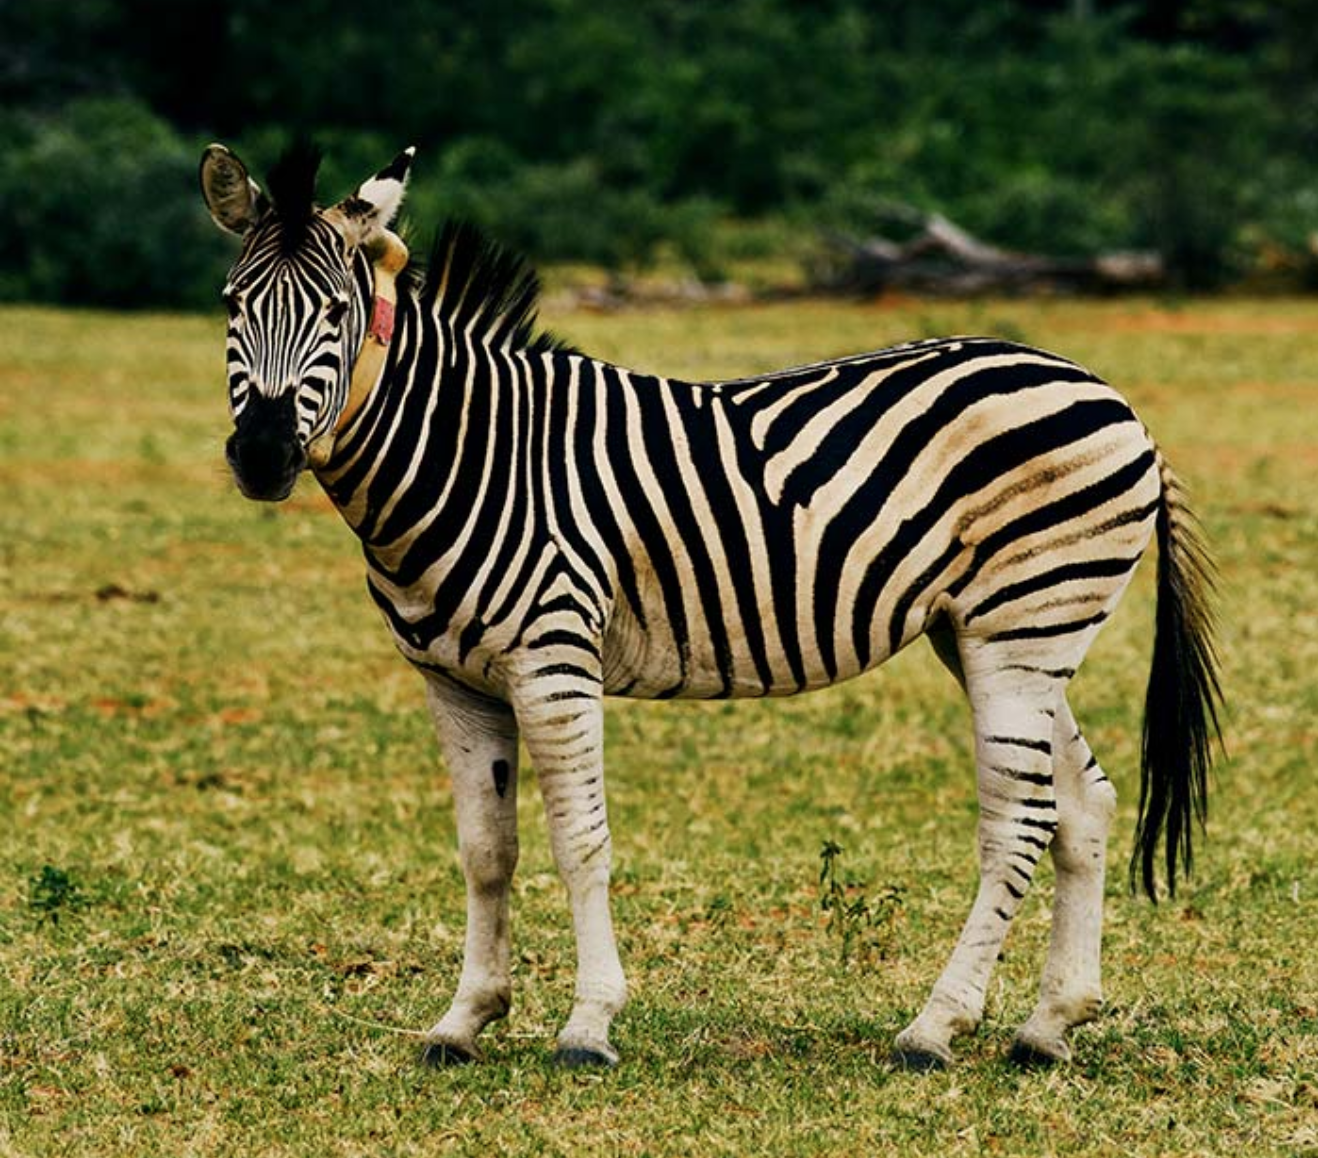 A Zebra on the Welgevonden Game Reserve with a sensor-equipped collar